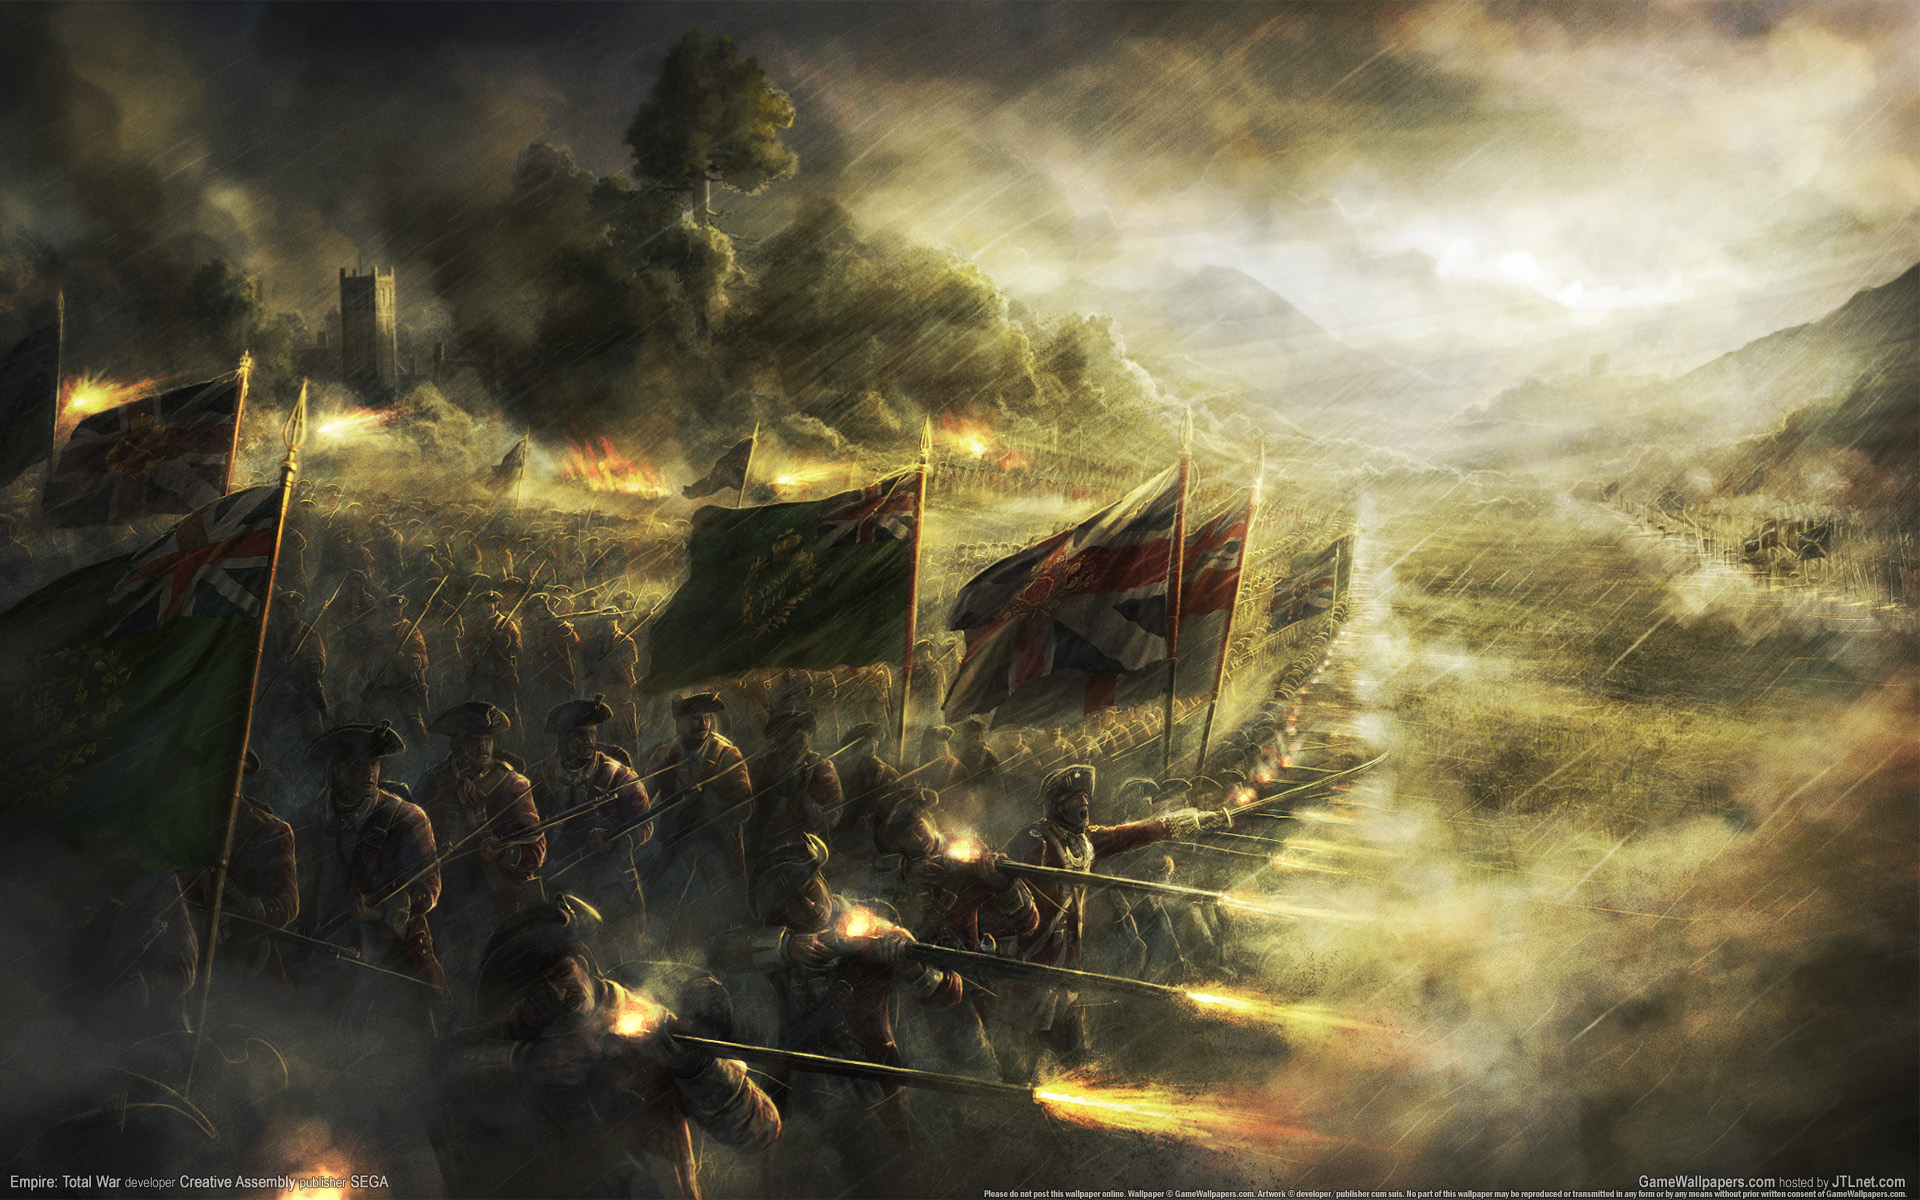 HD Wallpapers Empire Total War 6